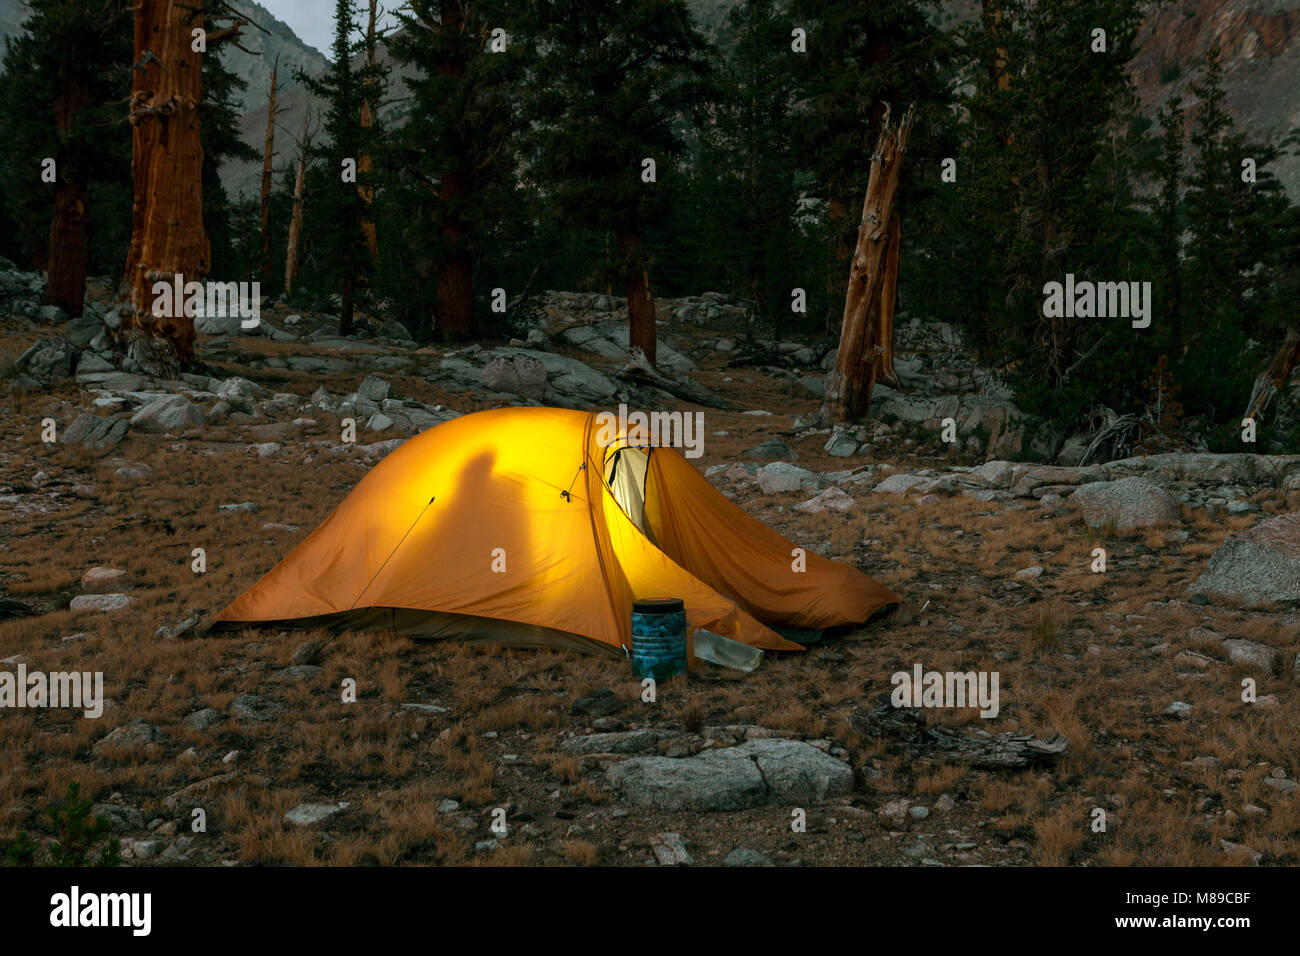 CALIFORNIA - C&site with bear proof container outside tent near & Bear At Tent Stock Photos u0026 Bear At Tent Stock Images - Alamy